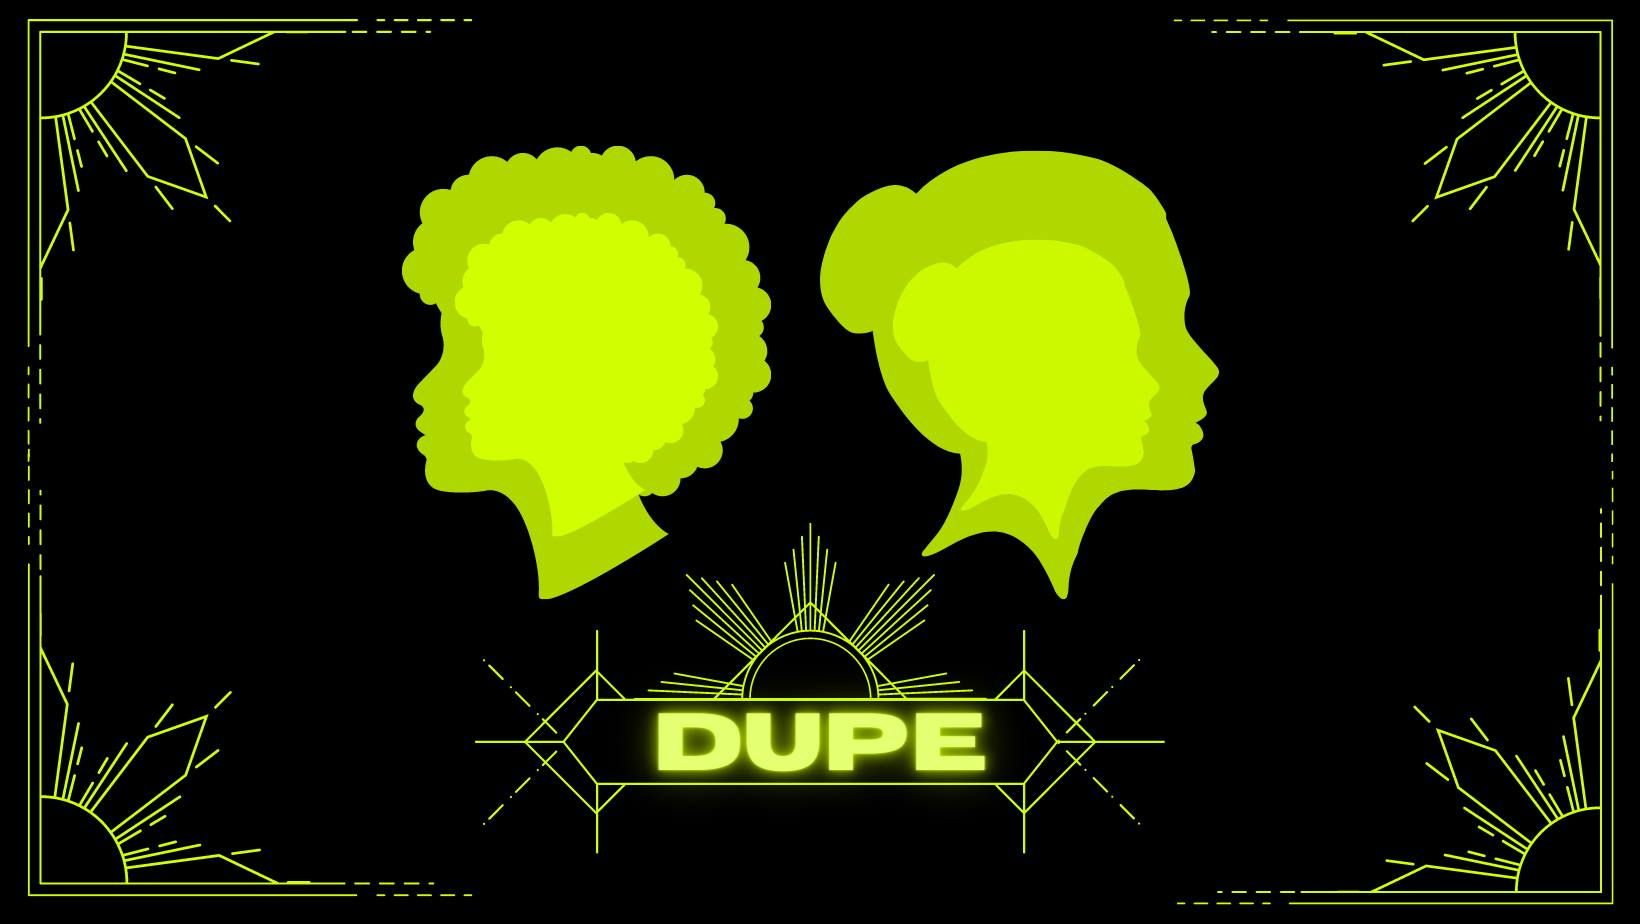 Dupe by Heckle Her Productions